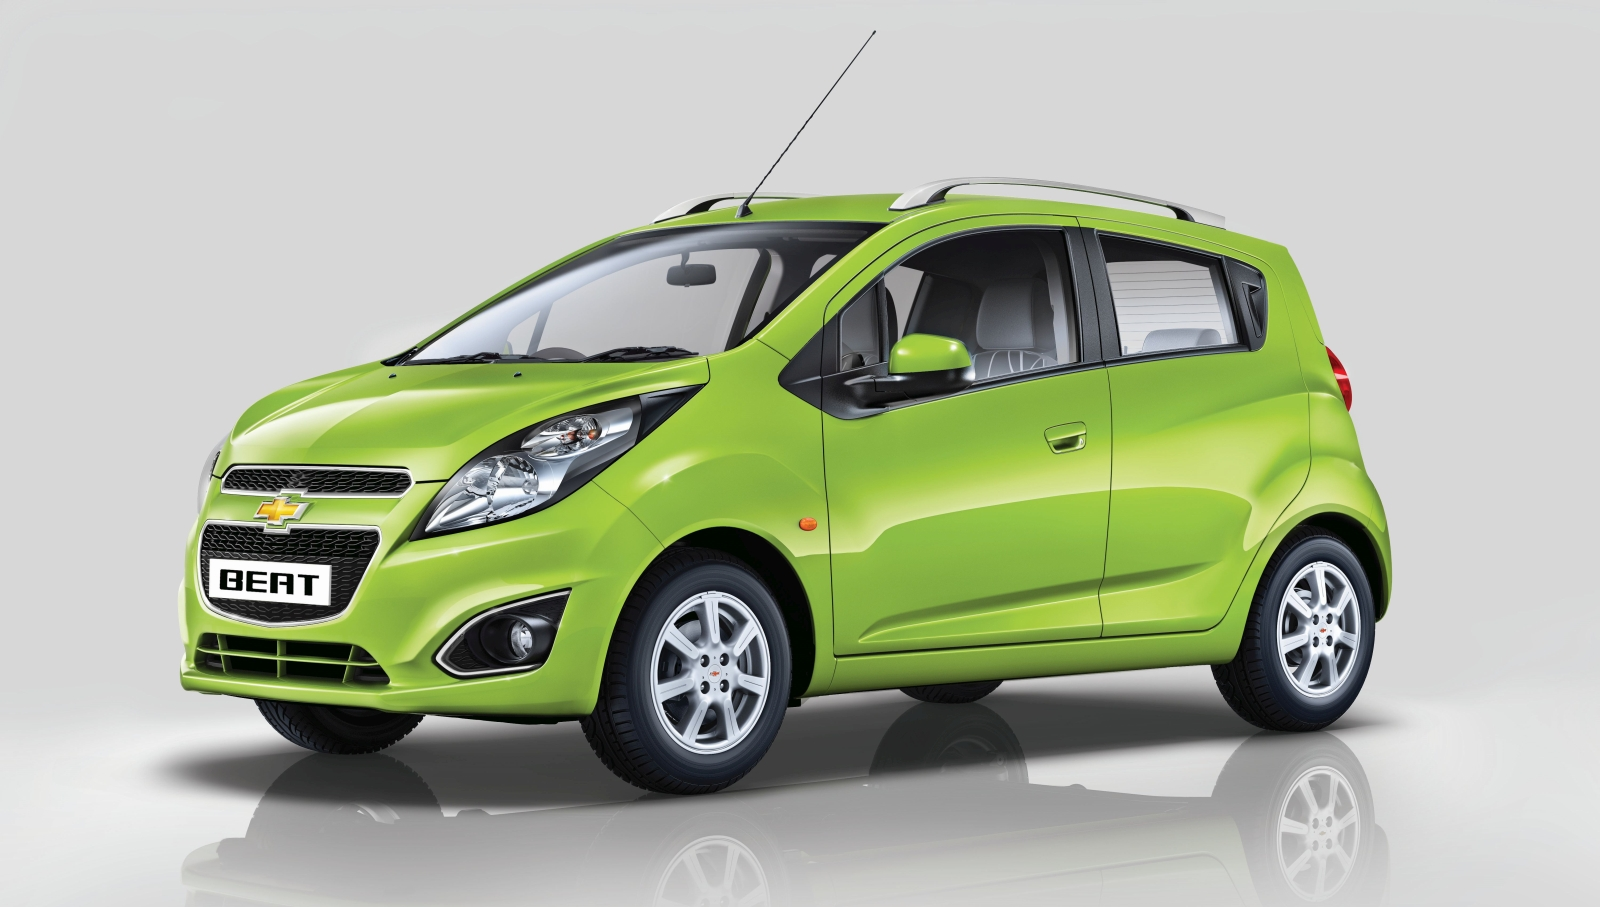 Chevrolet car models and prices in india 2